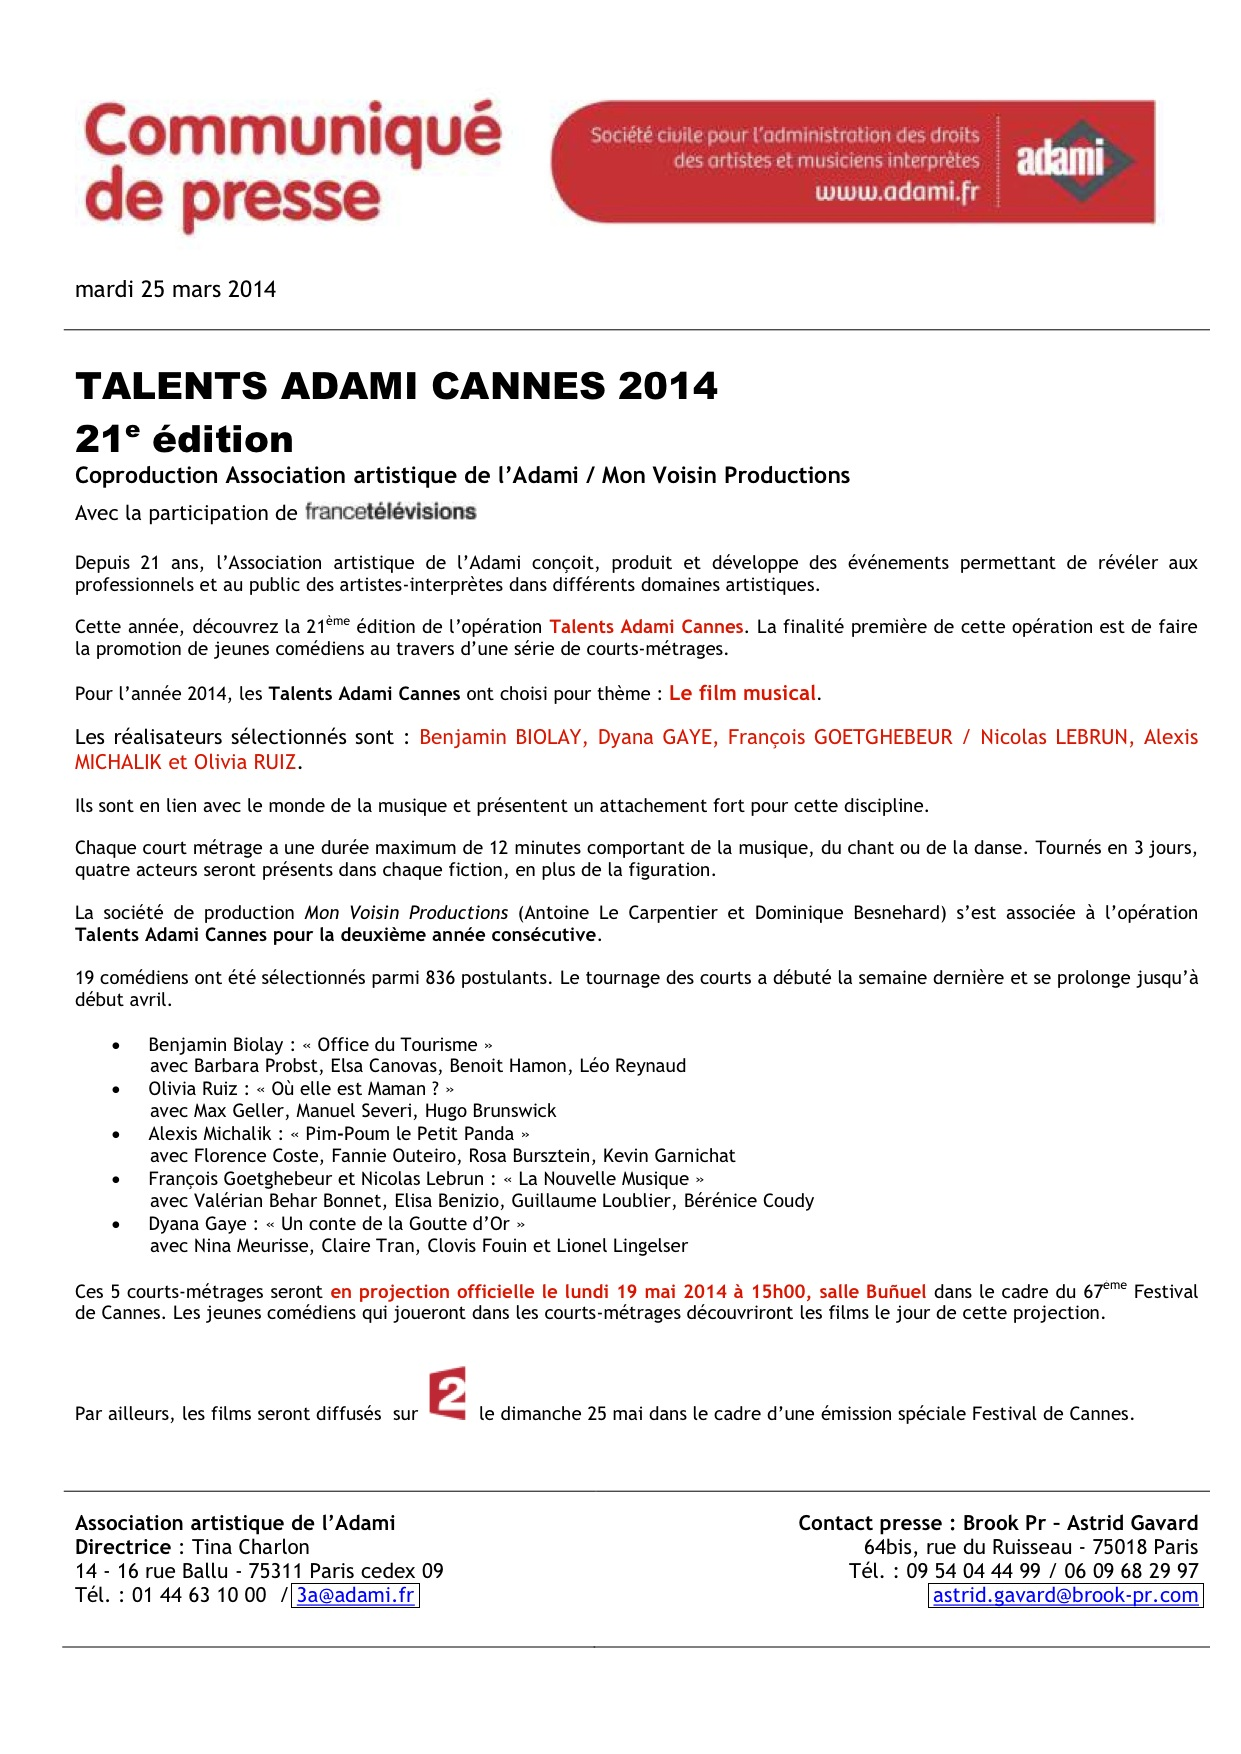 TALENTS CANNES 2014_CP